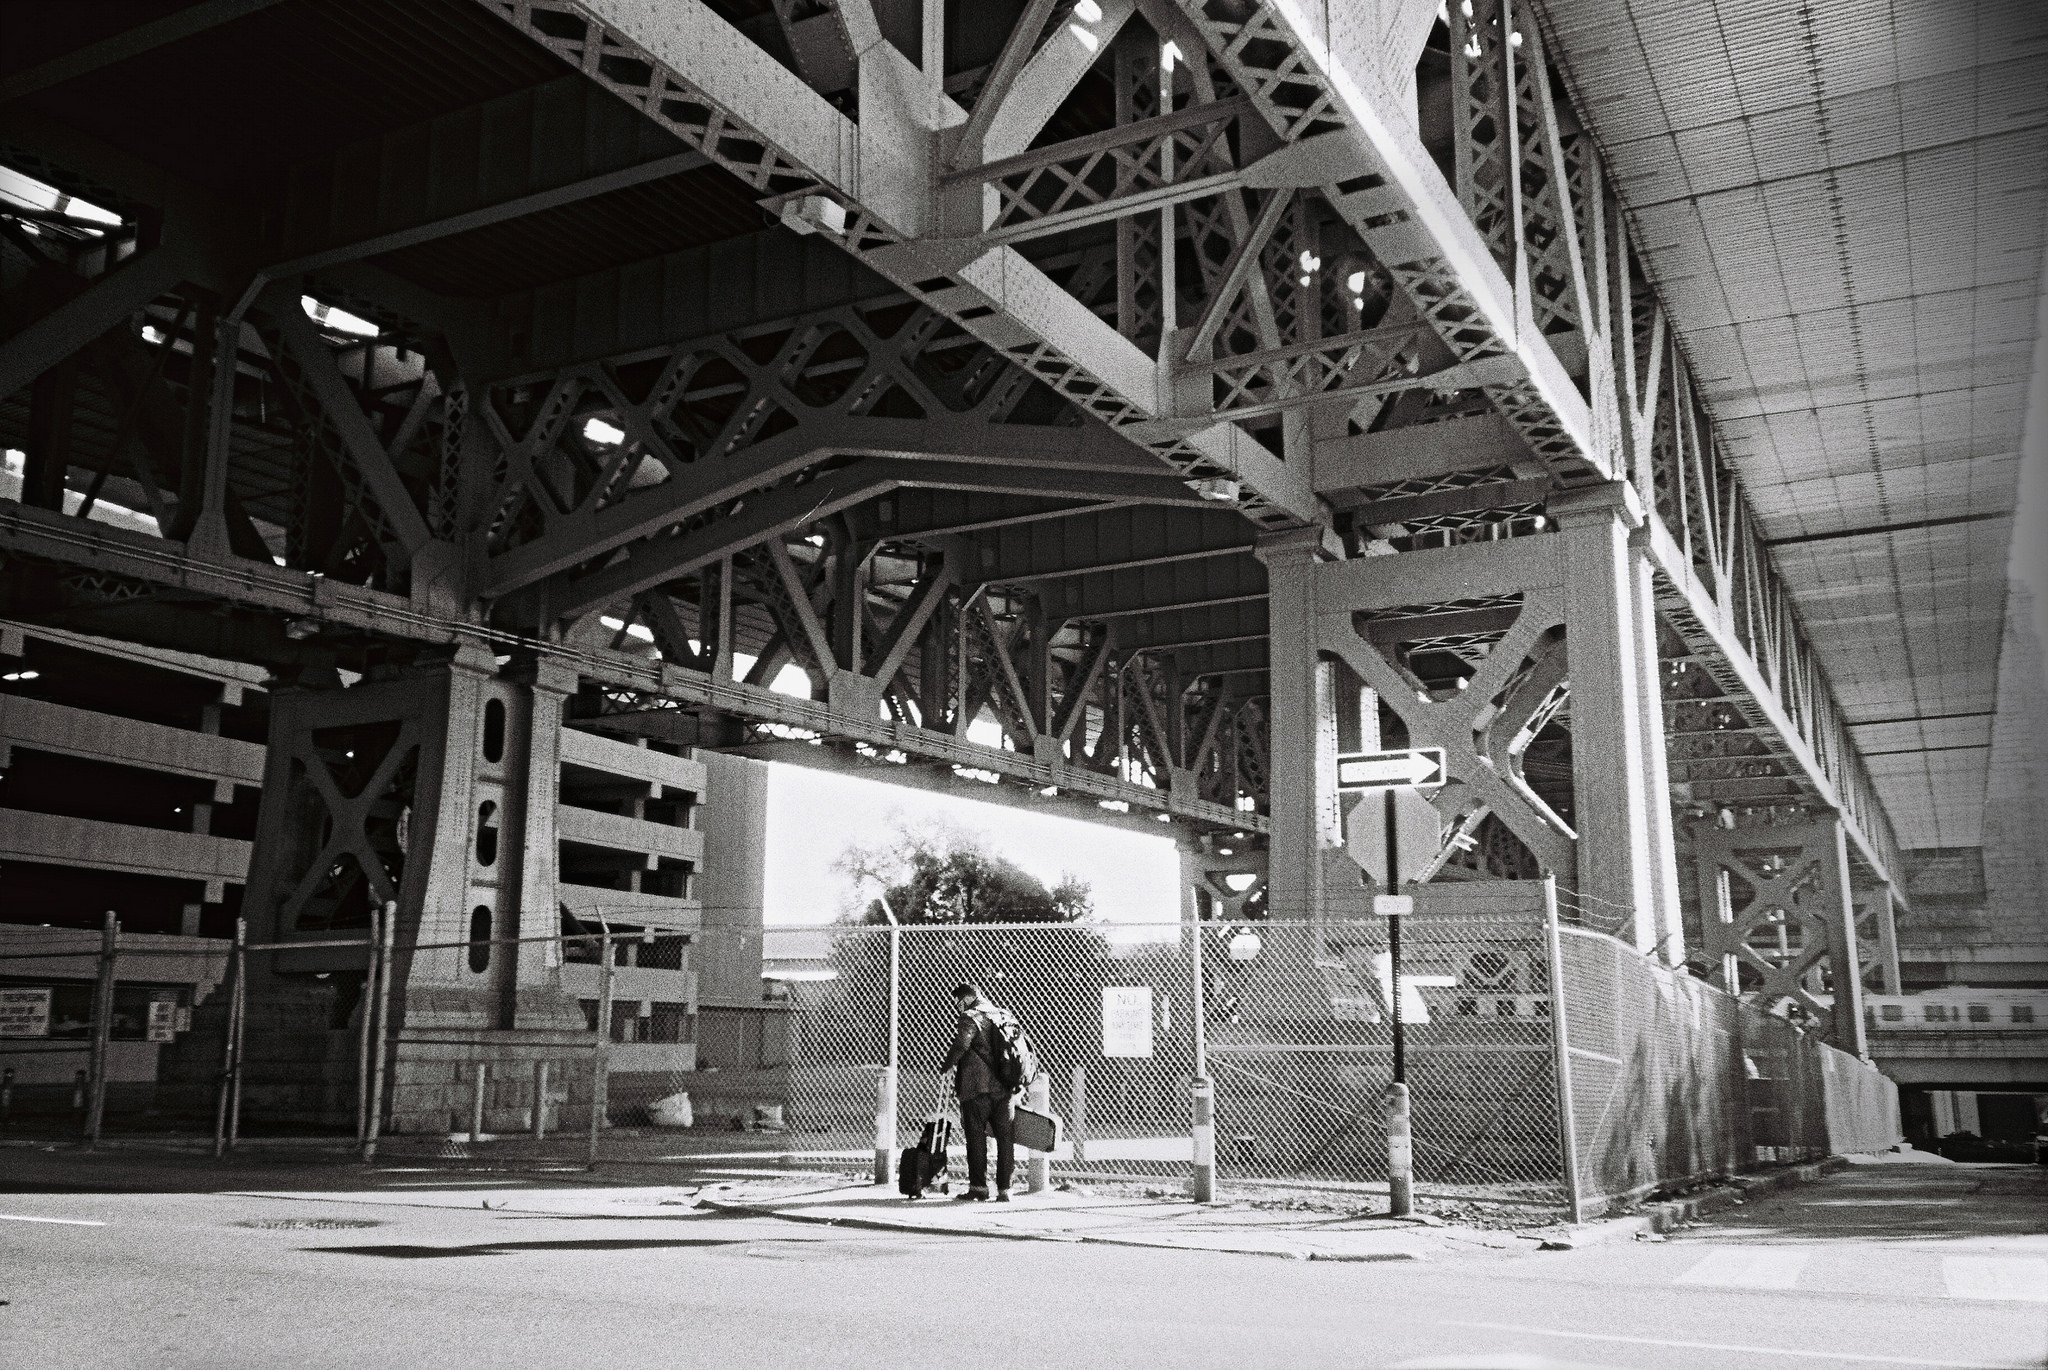 Below Benjamin Franklin Bridge | David Swift, EOTS Flickr Group